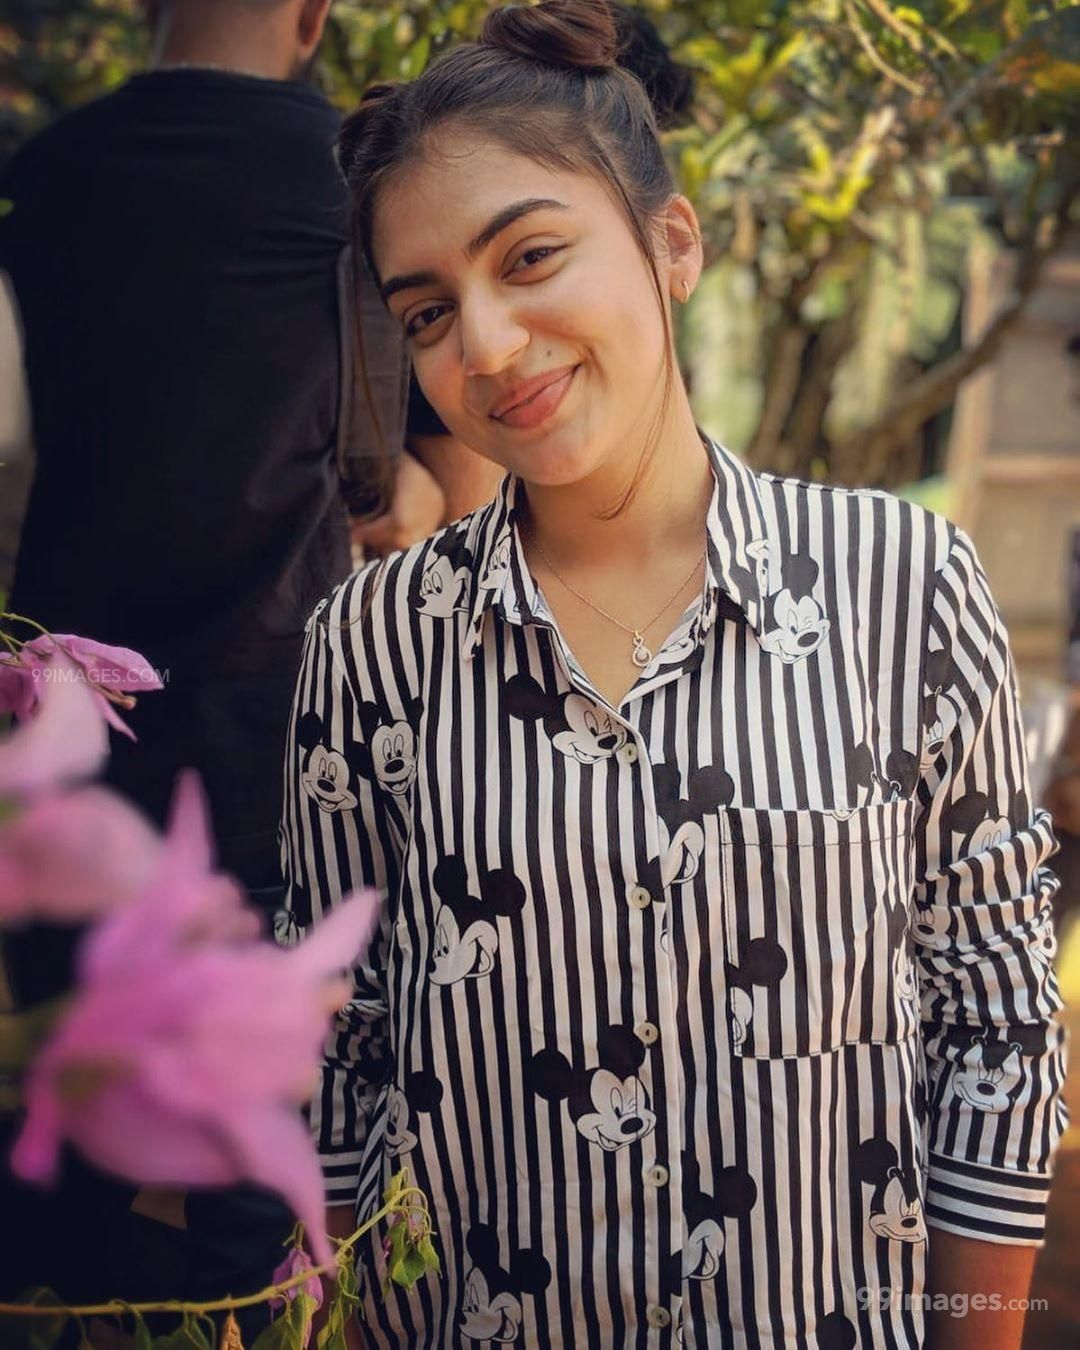 Nazriya Nazim Beautiful HD Photos / Wallpapers, WhatsApp DP Download (1080p) (575059) - Nazriya Nazim